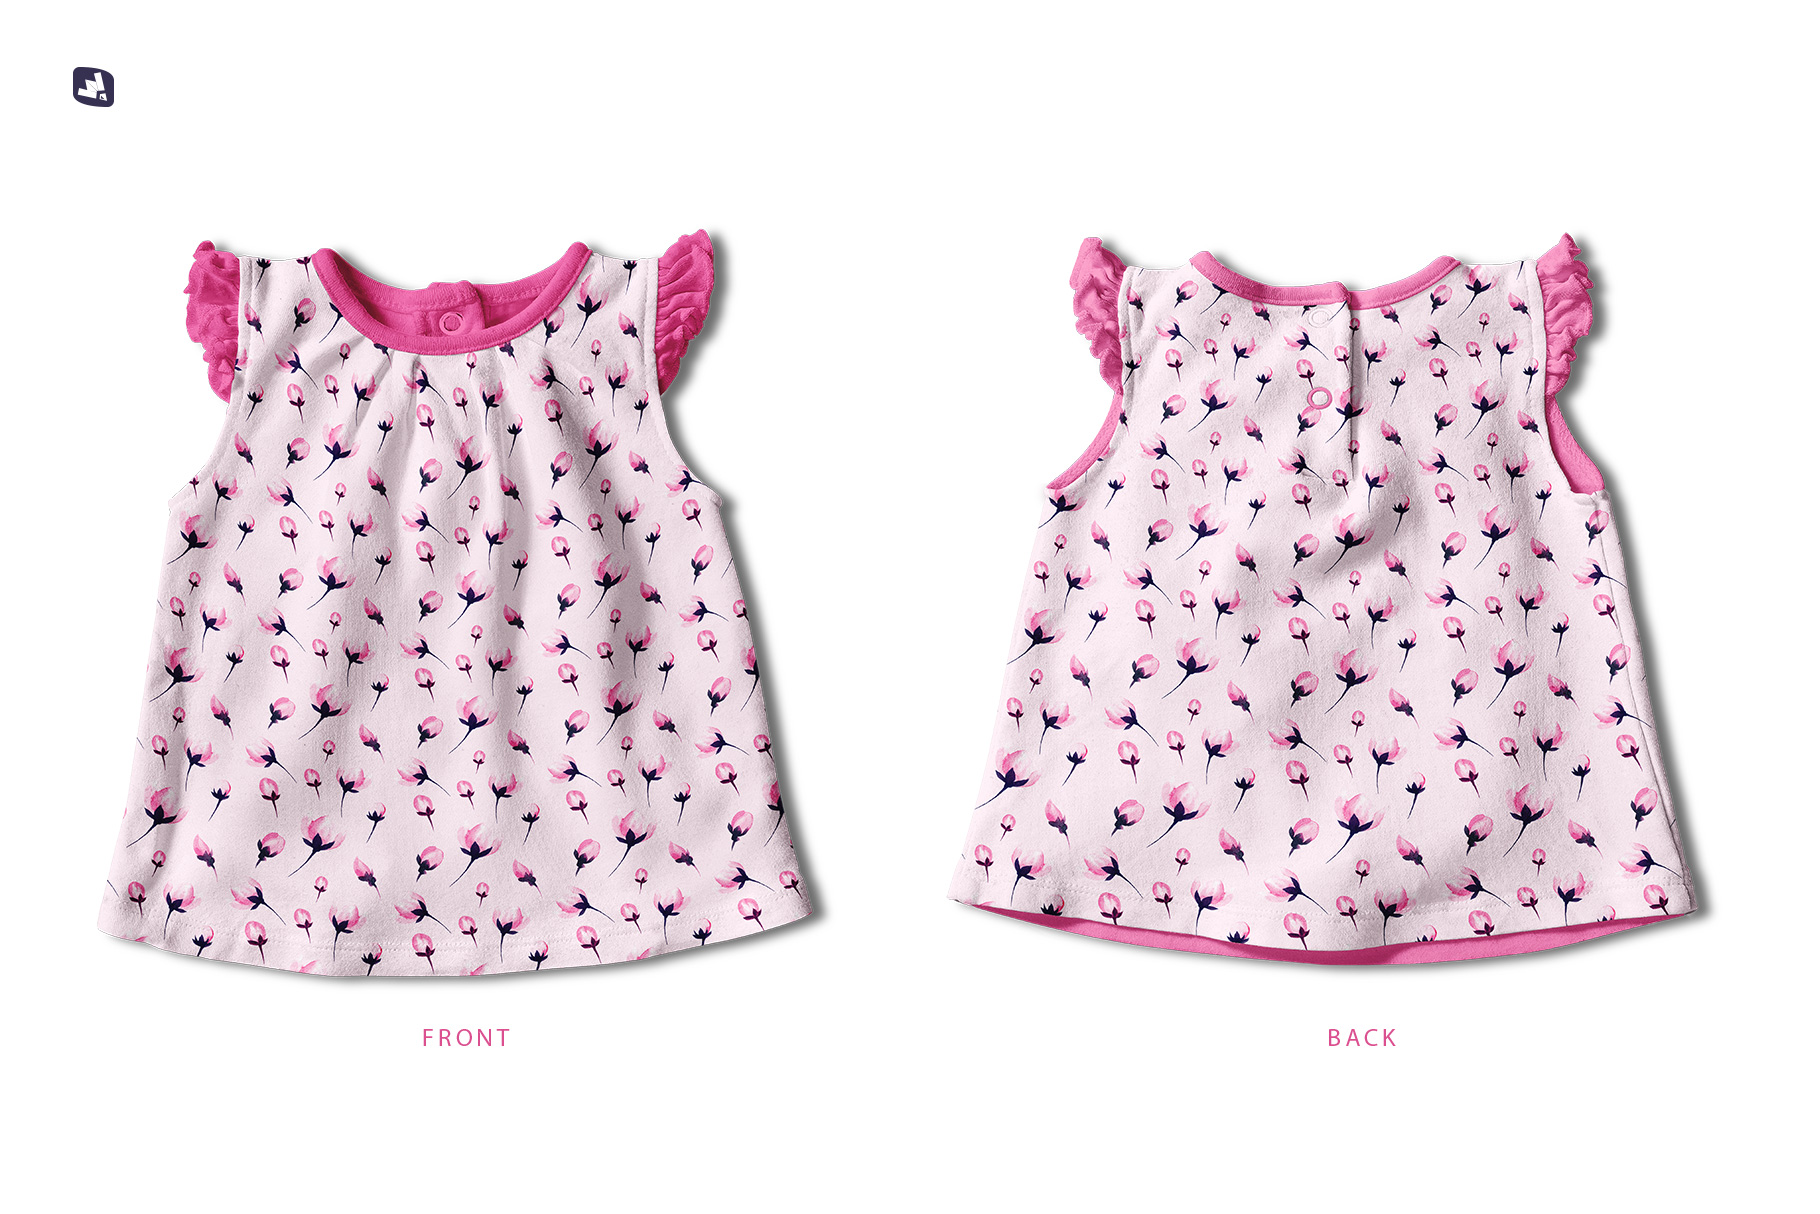 inside the file of the ruffle sleeve baby girl top mockup